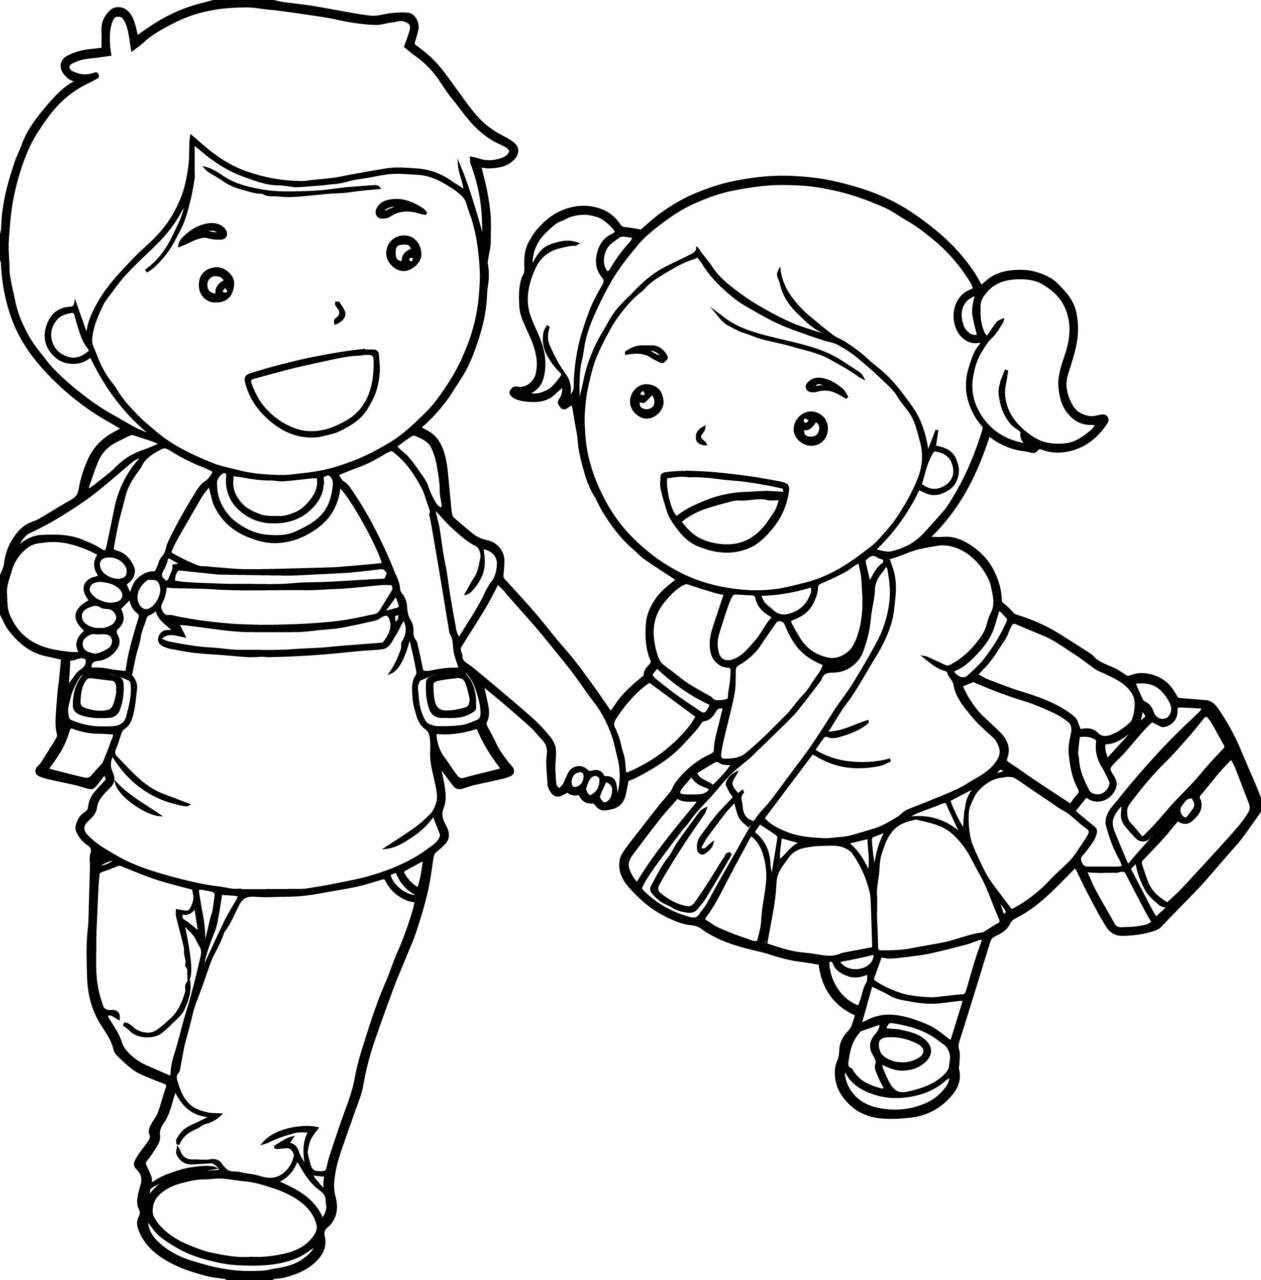 Ncert Curriculum For Pre School Suggests Learning In